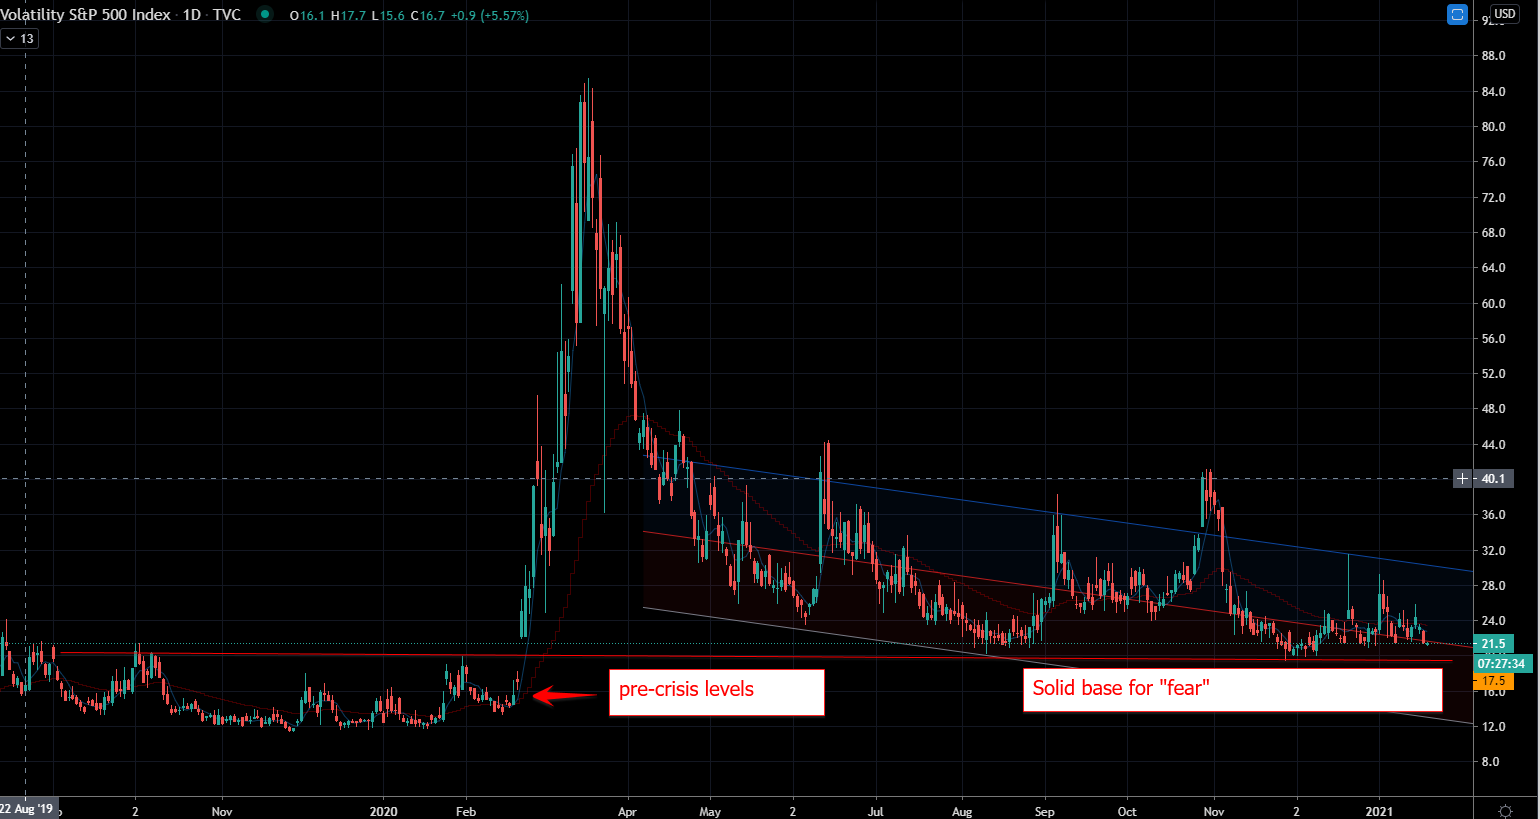 Stocks to Hedge Your Portfolio: CBOE Volatility Index (VIX) Stock Chart Showing Solid Base in Spite of Record Markets